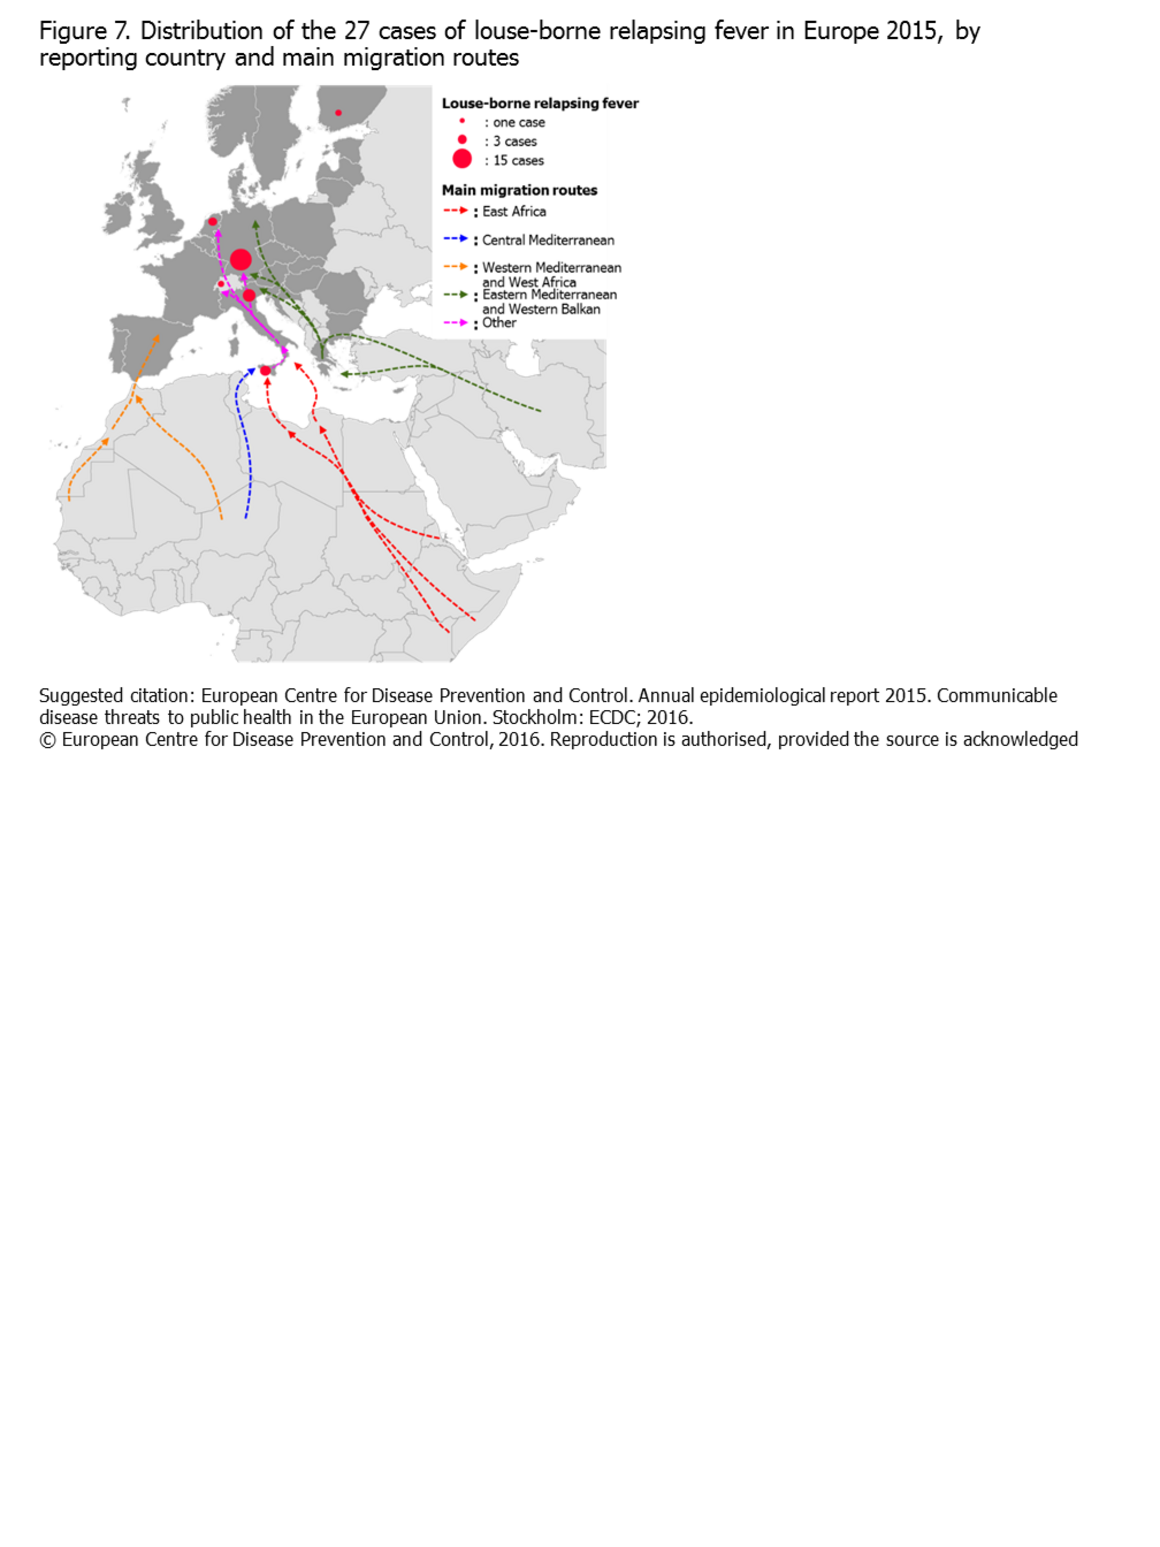 Distribution of the 27 cases of louse-borne relapsing fever in Europe 2015, by reporting country and main migration routes